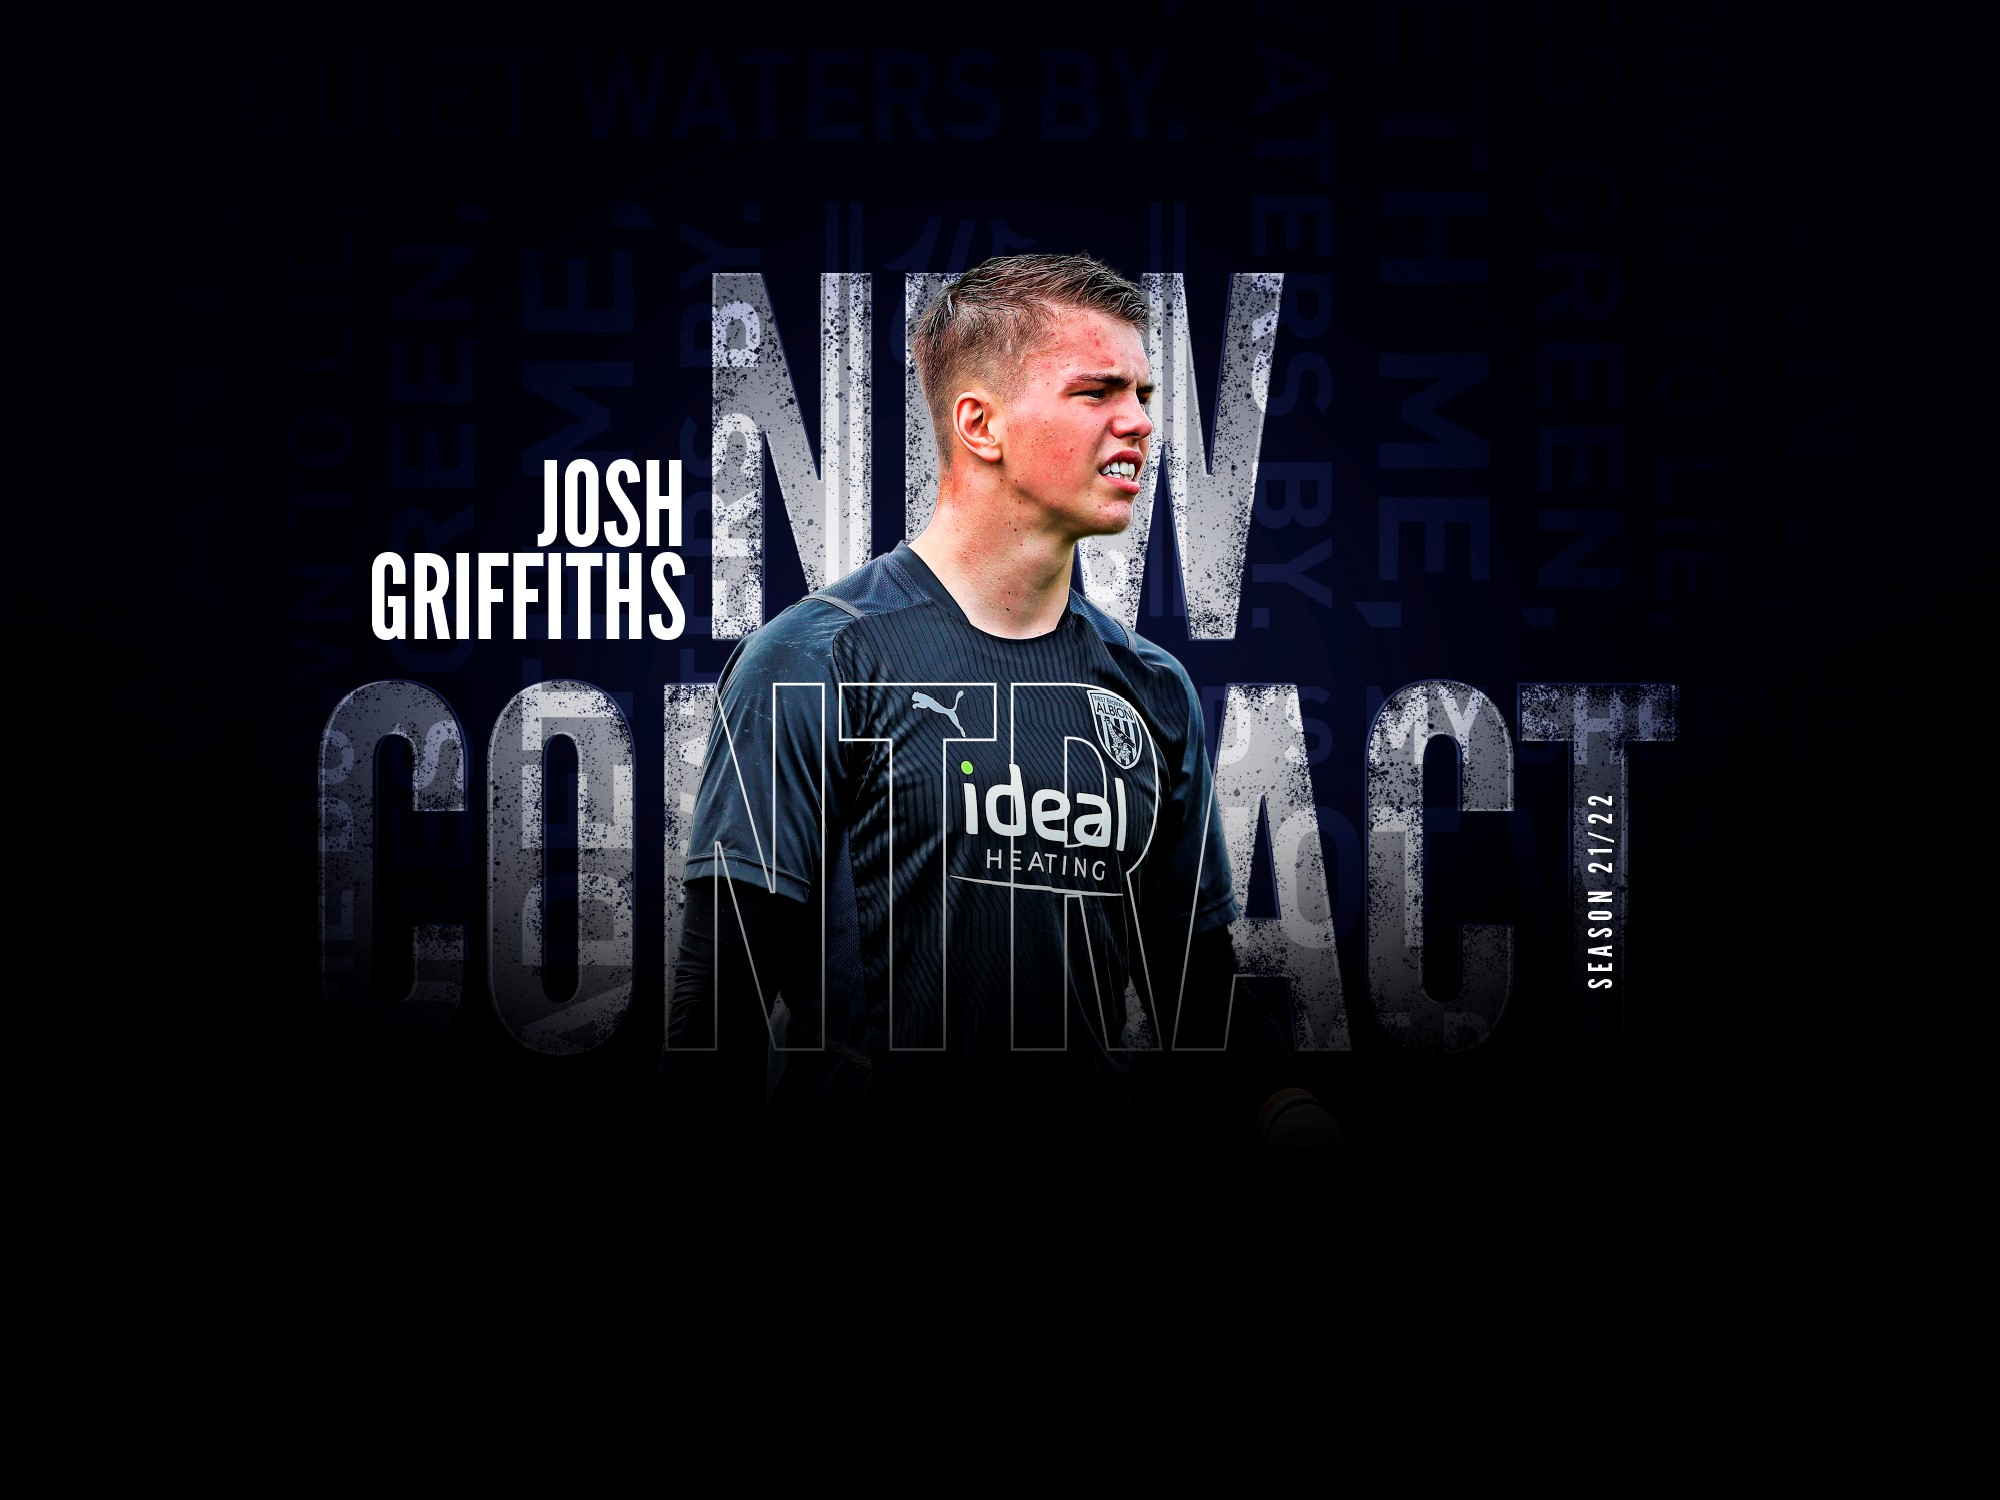 Josh Griffiths contract